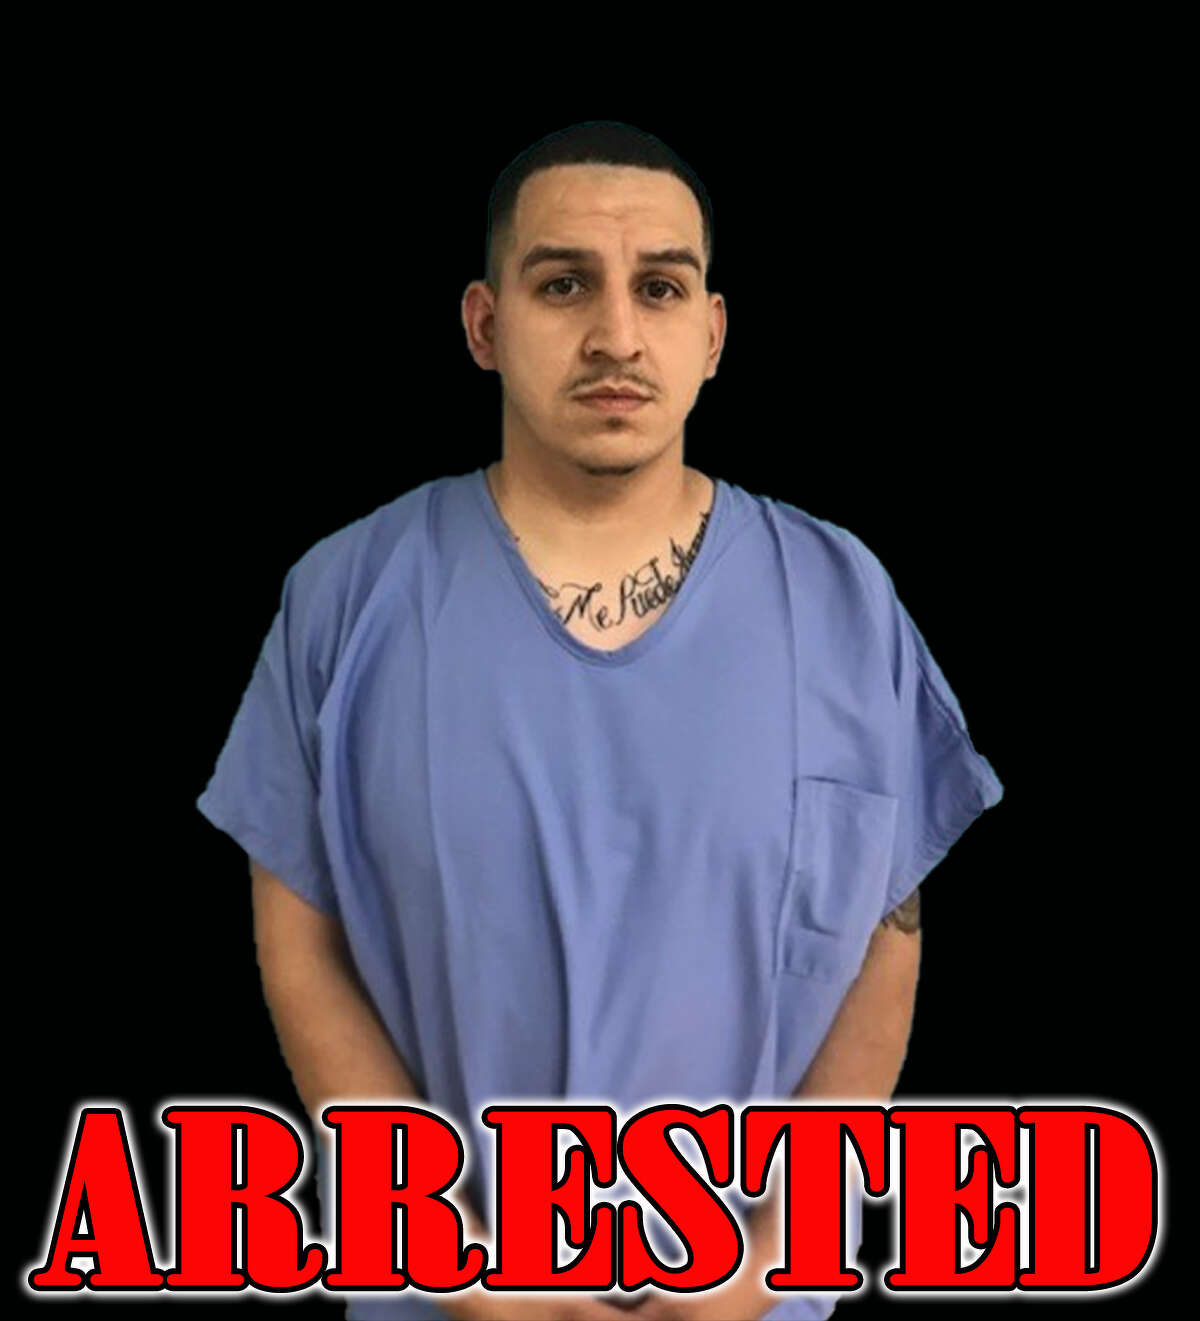 Laredo South agents apprehended an individual near downtown Laredo. He was identified as Felix Carbajal-Morales, a 31 year old from Mexico.